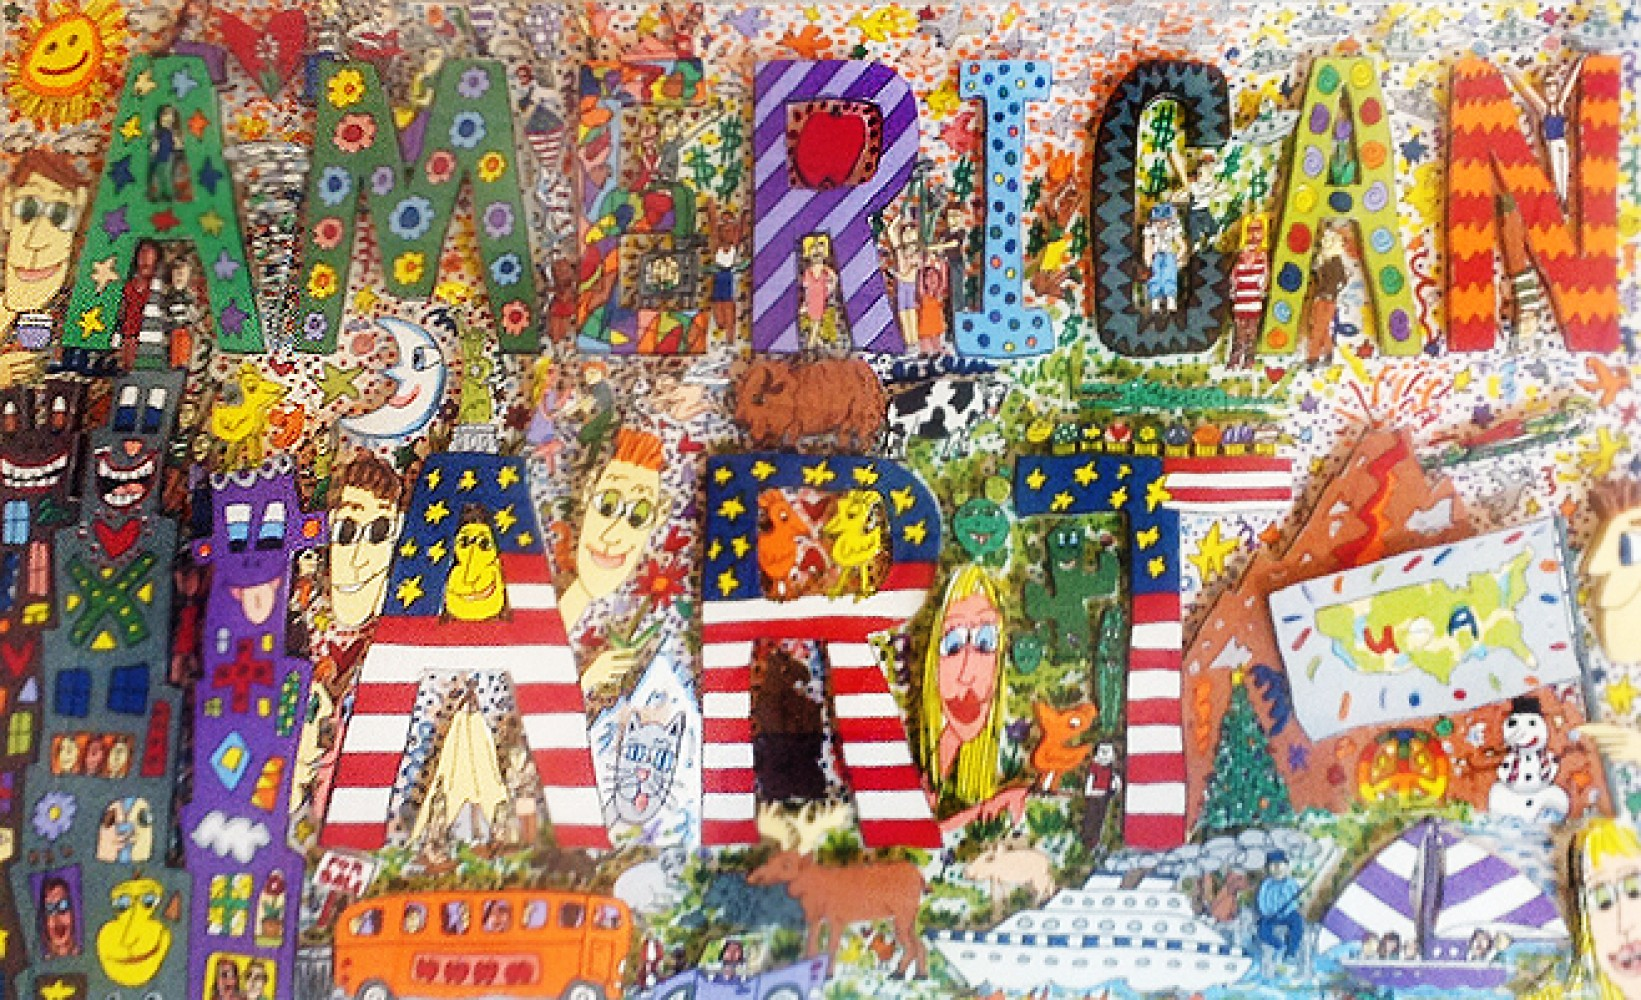 James rizzi art for sale for Art photos for sale